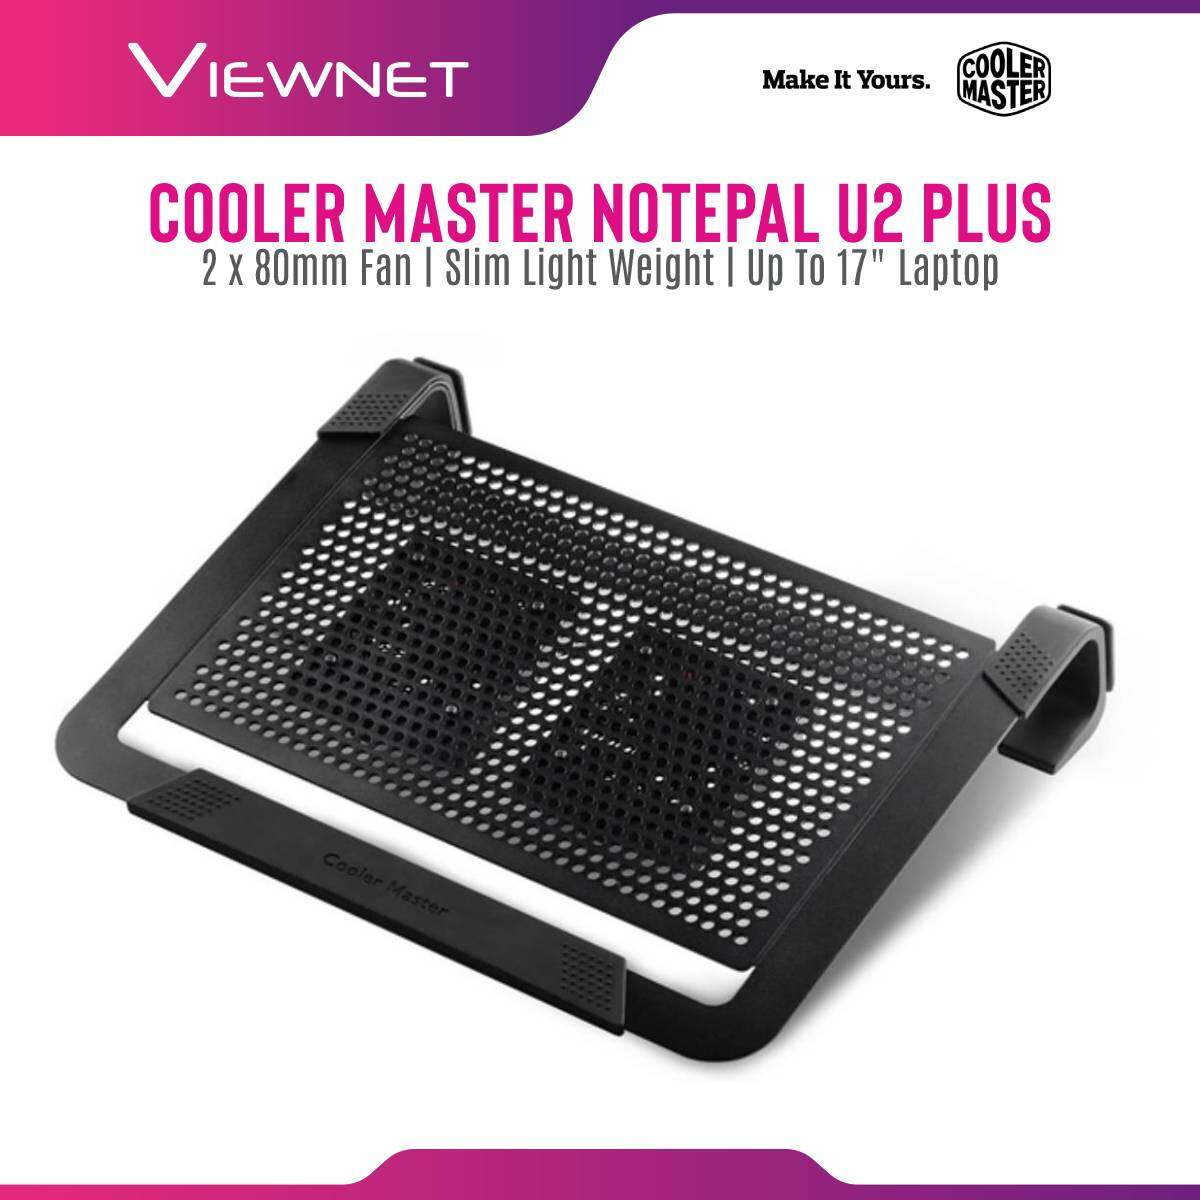 Cooler Master Notepal U2 PLUS 2 x 80mm Fan Slim Light Weight Portable Mesh USB 2.0 Notebook Cooler for up to 17